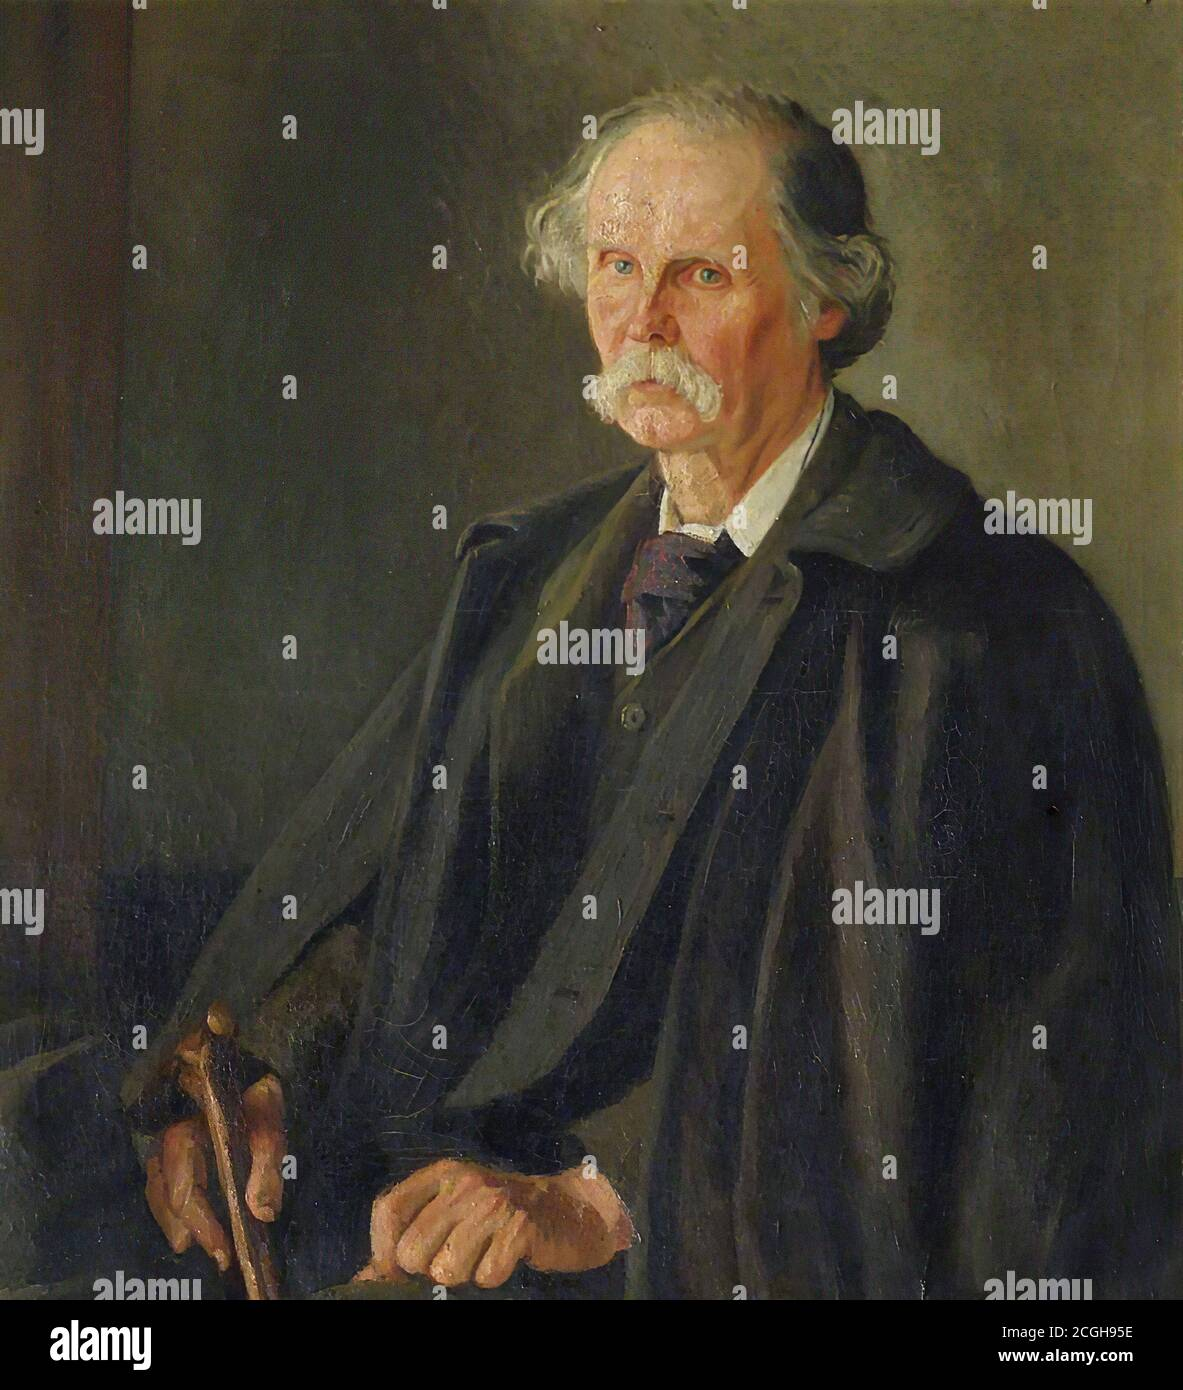 Alfred Marshall High Resolution Stock Photography and Images - Alamy